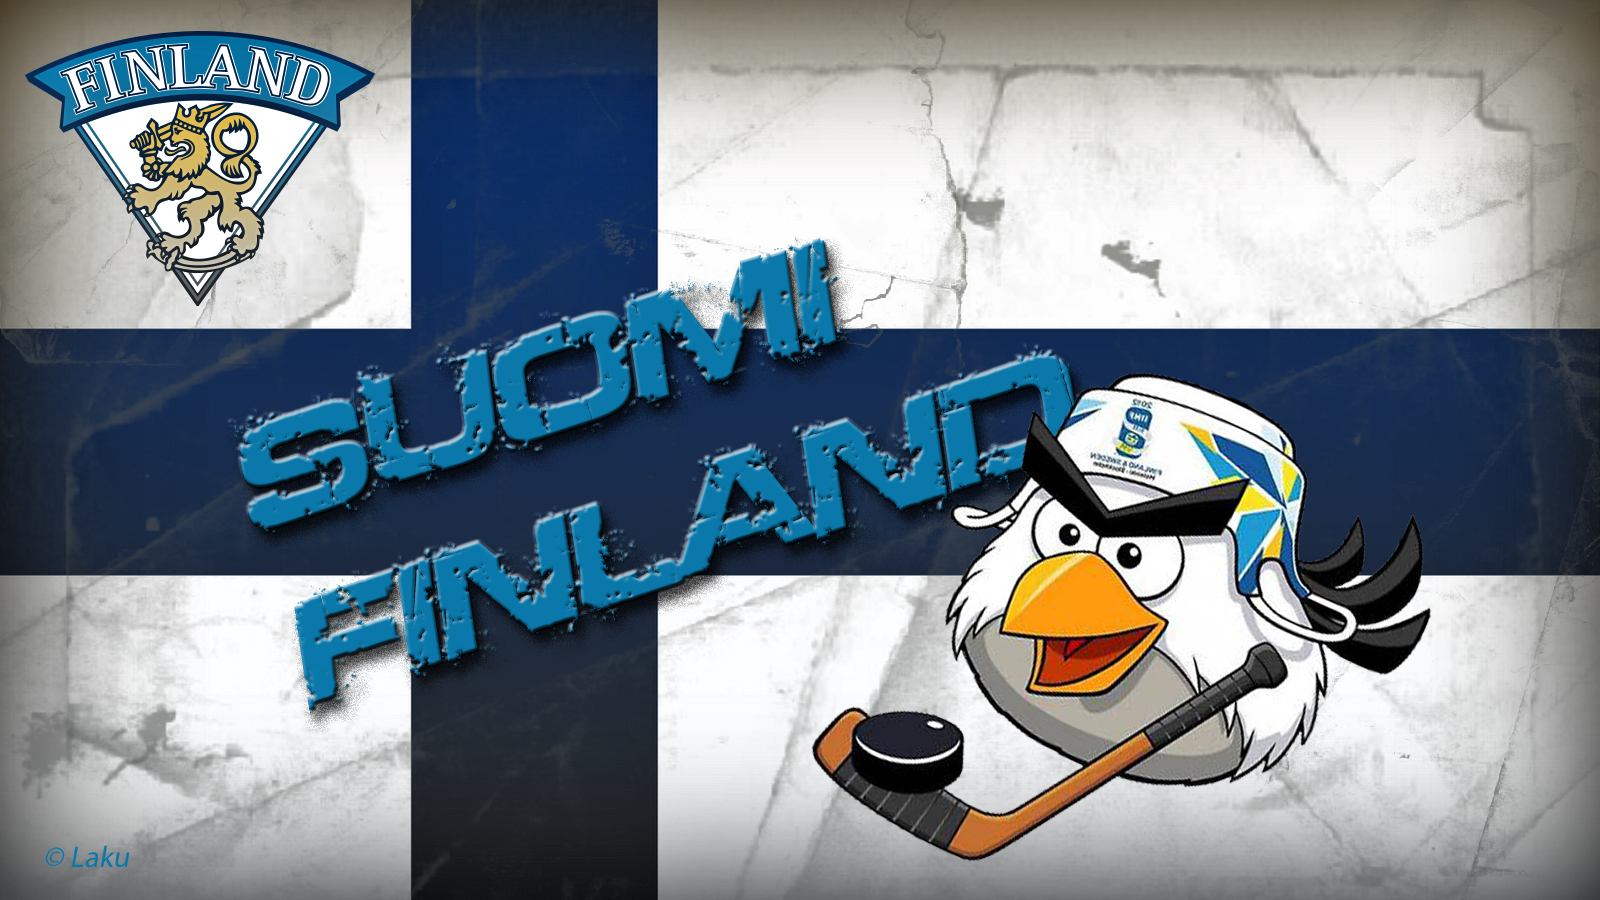 trololo blogg Wallpaper Finlandia 1600x900